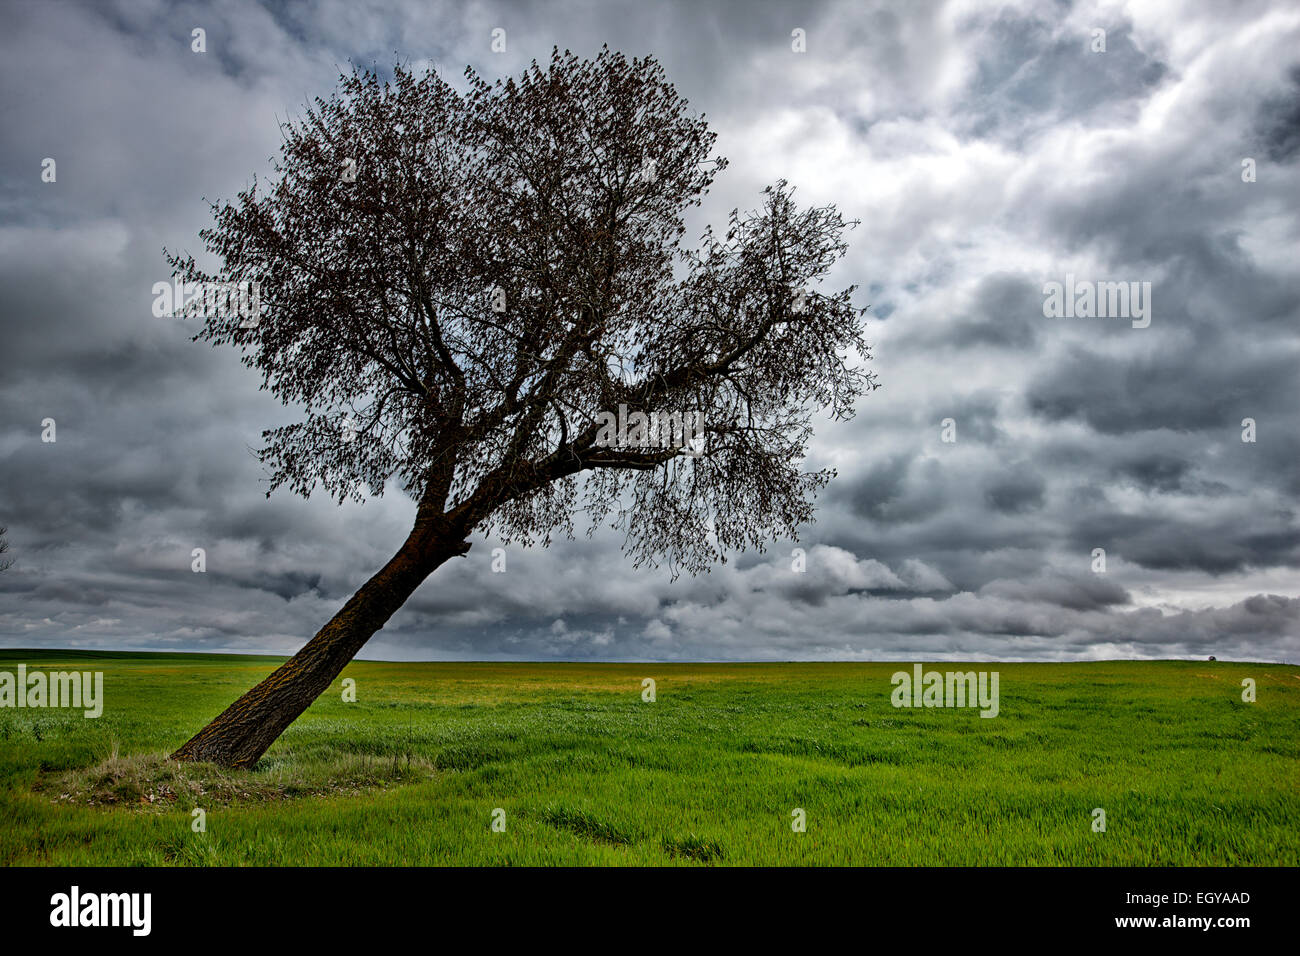 Spain, Province of Zamora, warped tree under cloudy sky - Stock Image